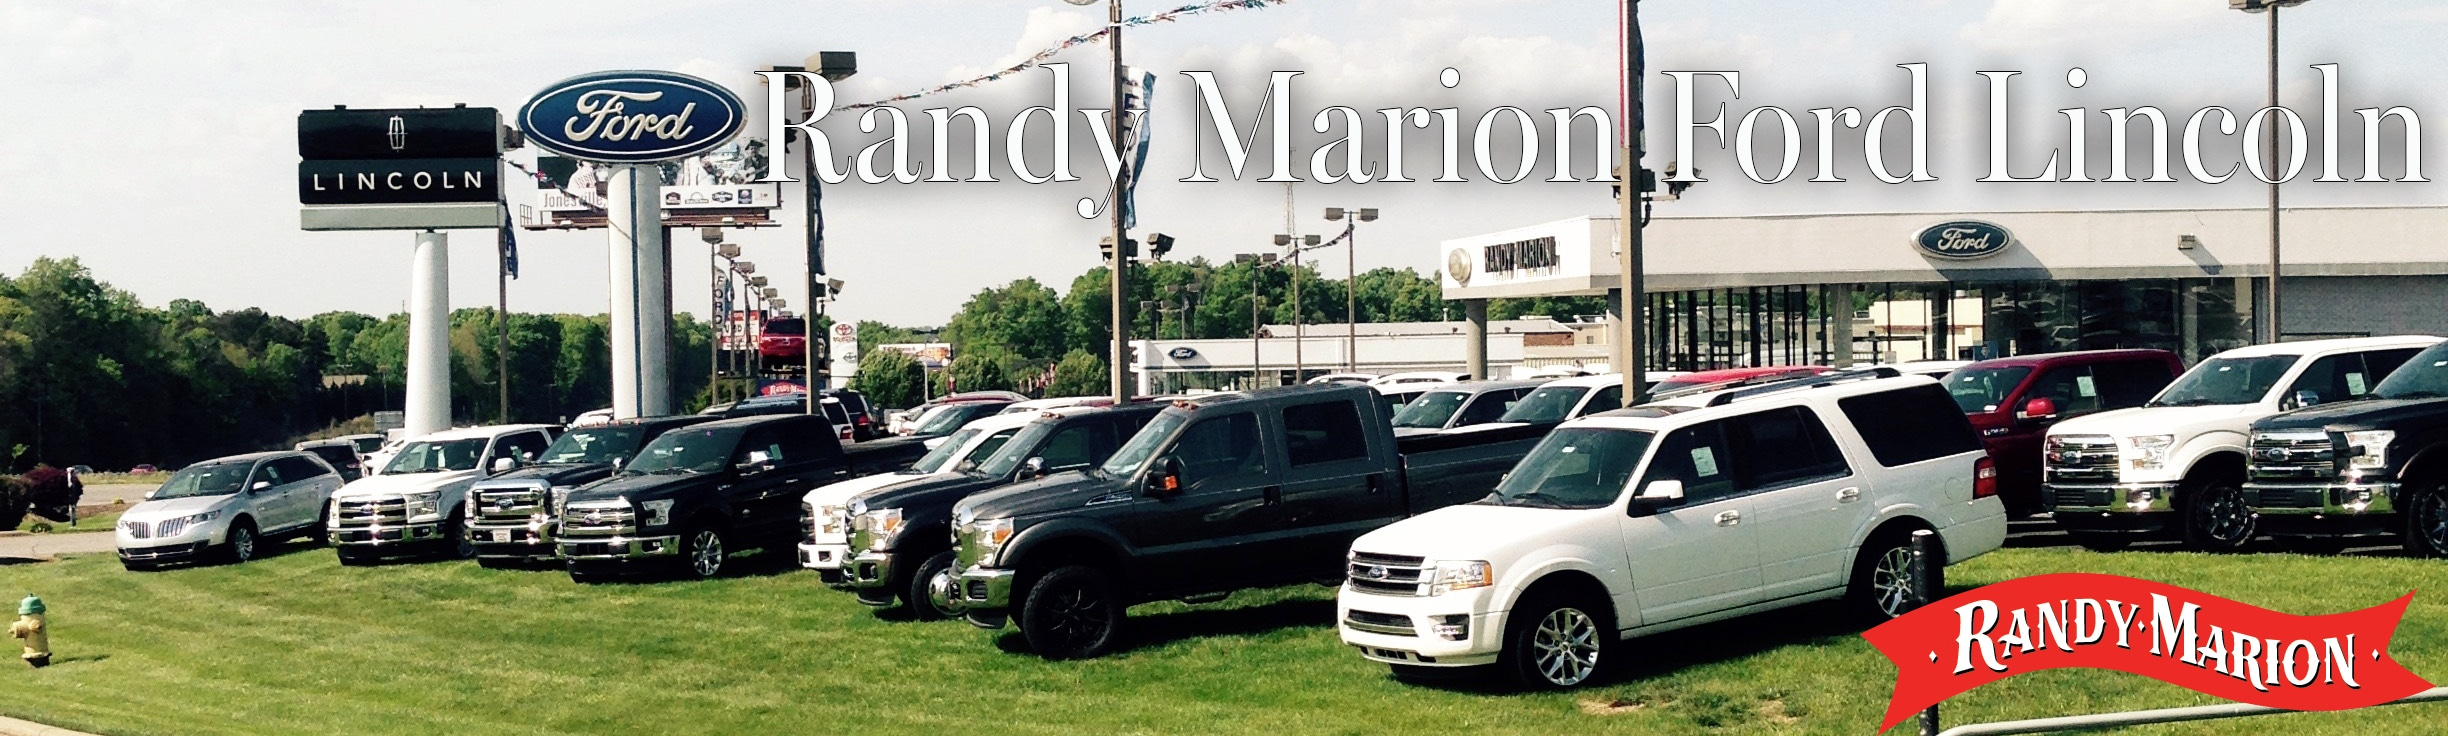 about randy marion ford lincoln llc a ford dealership in statesville. Black Bedroom Furniture Sets. Home Design Ideas